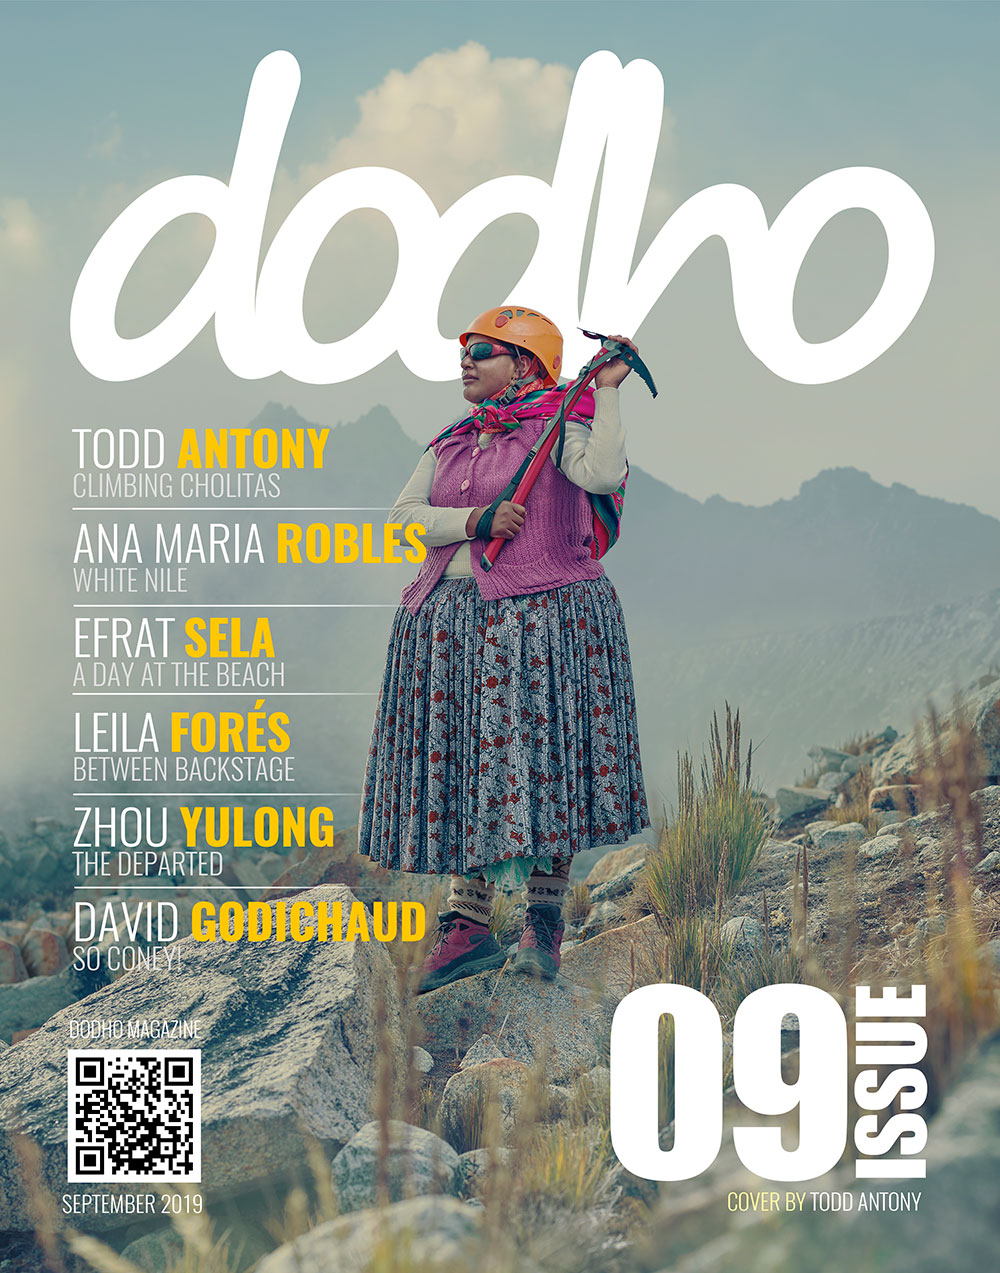 https://www.dodho.com/wp-content/uploads/2019/09/cover9.jpg